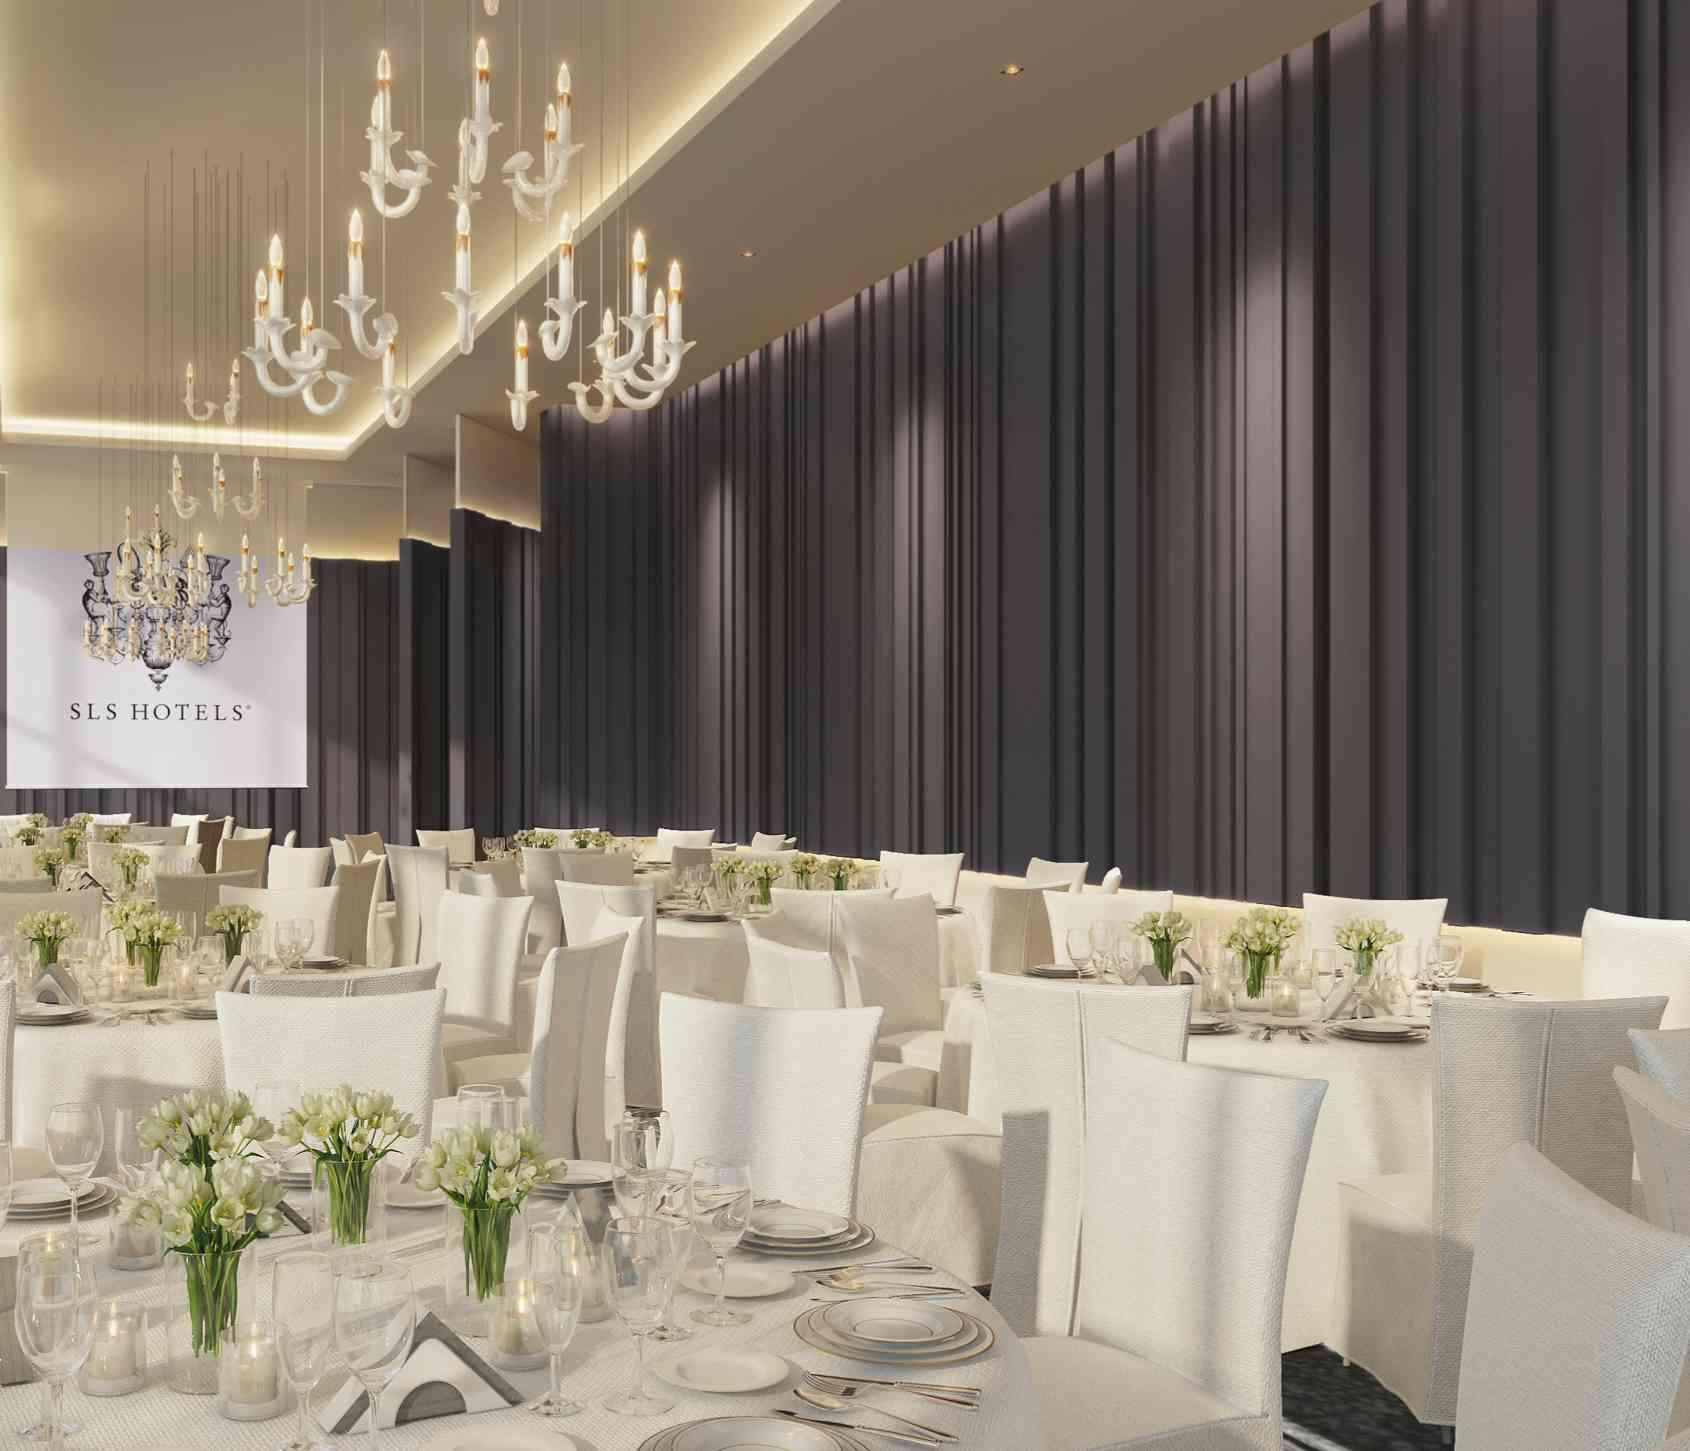 Event Space at a hotel